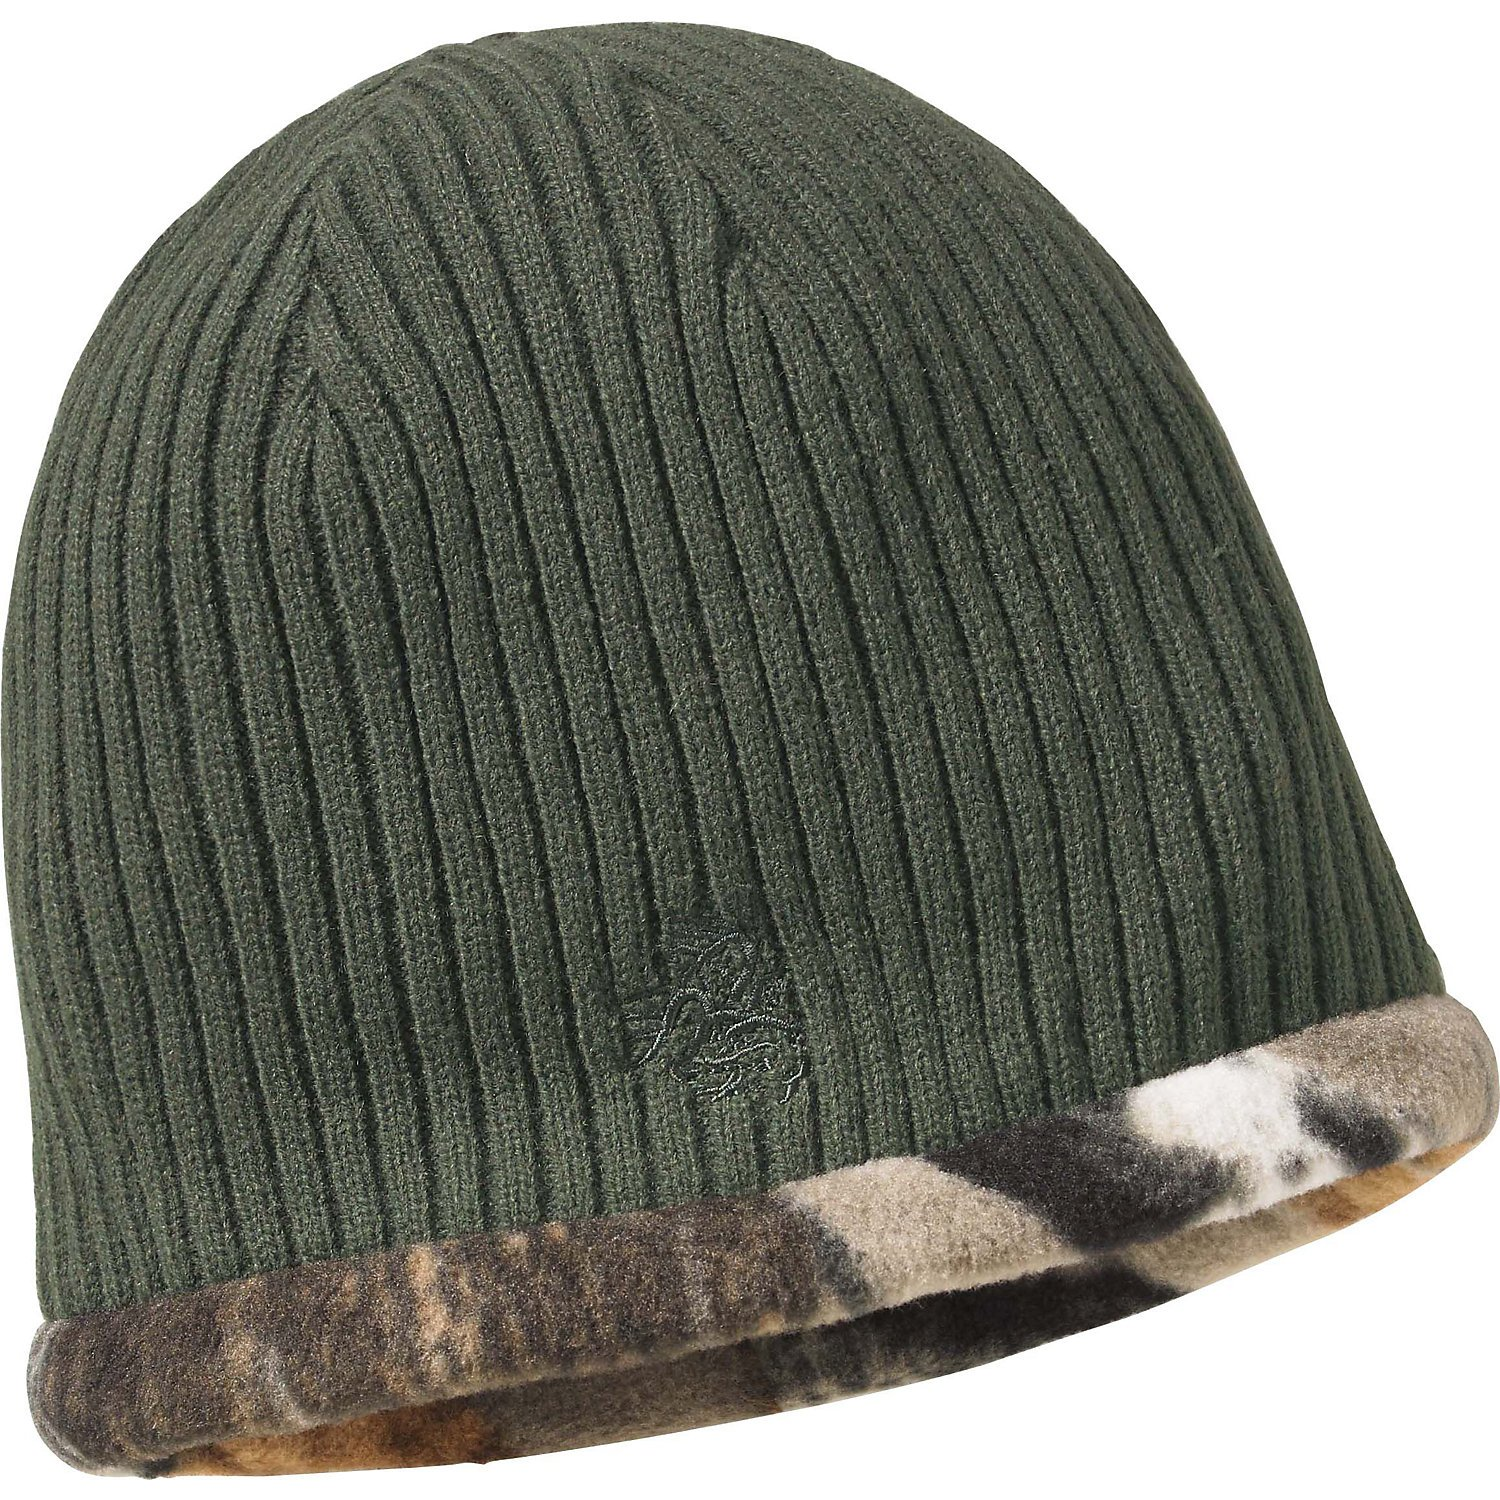 bb133386523 The Legendary Whitetails Men s Trophy Buck Reversible Knit Camo Hat is a  convenient reversible head covering that offers two distinct patterns for  the price ...